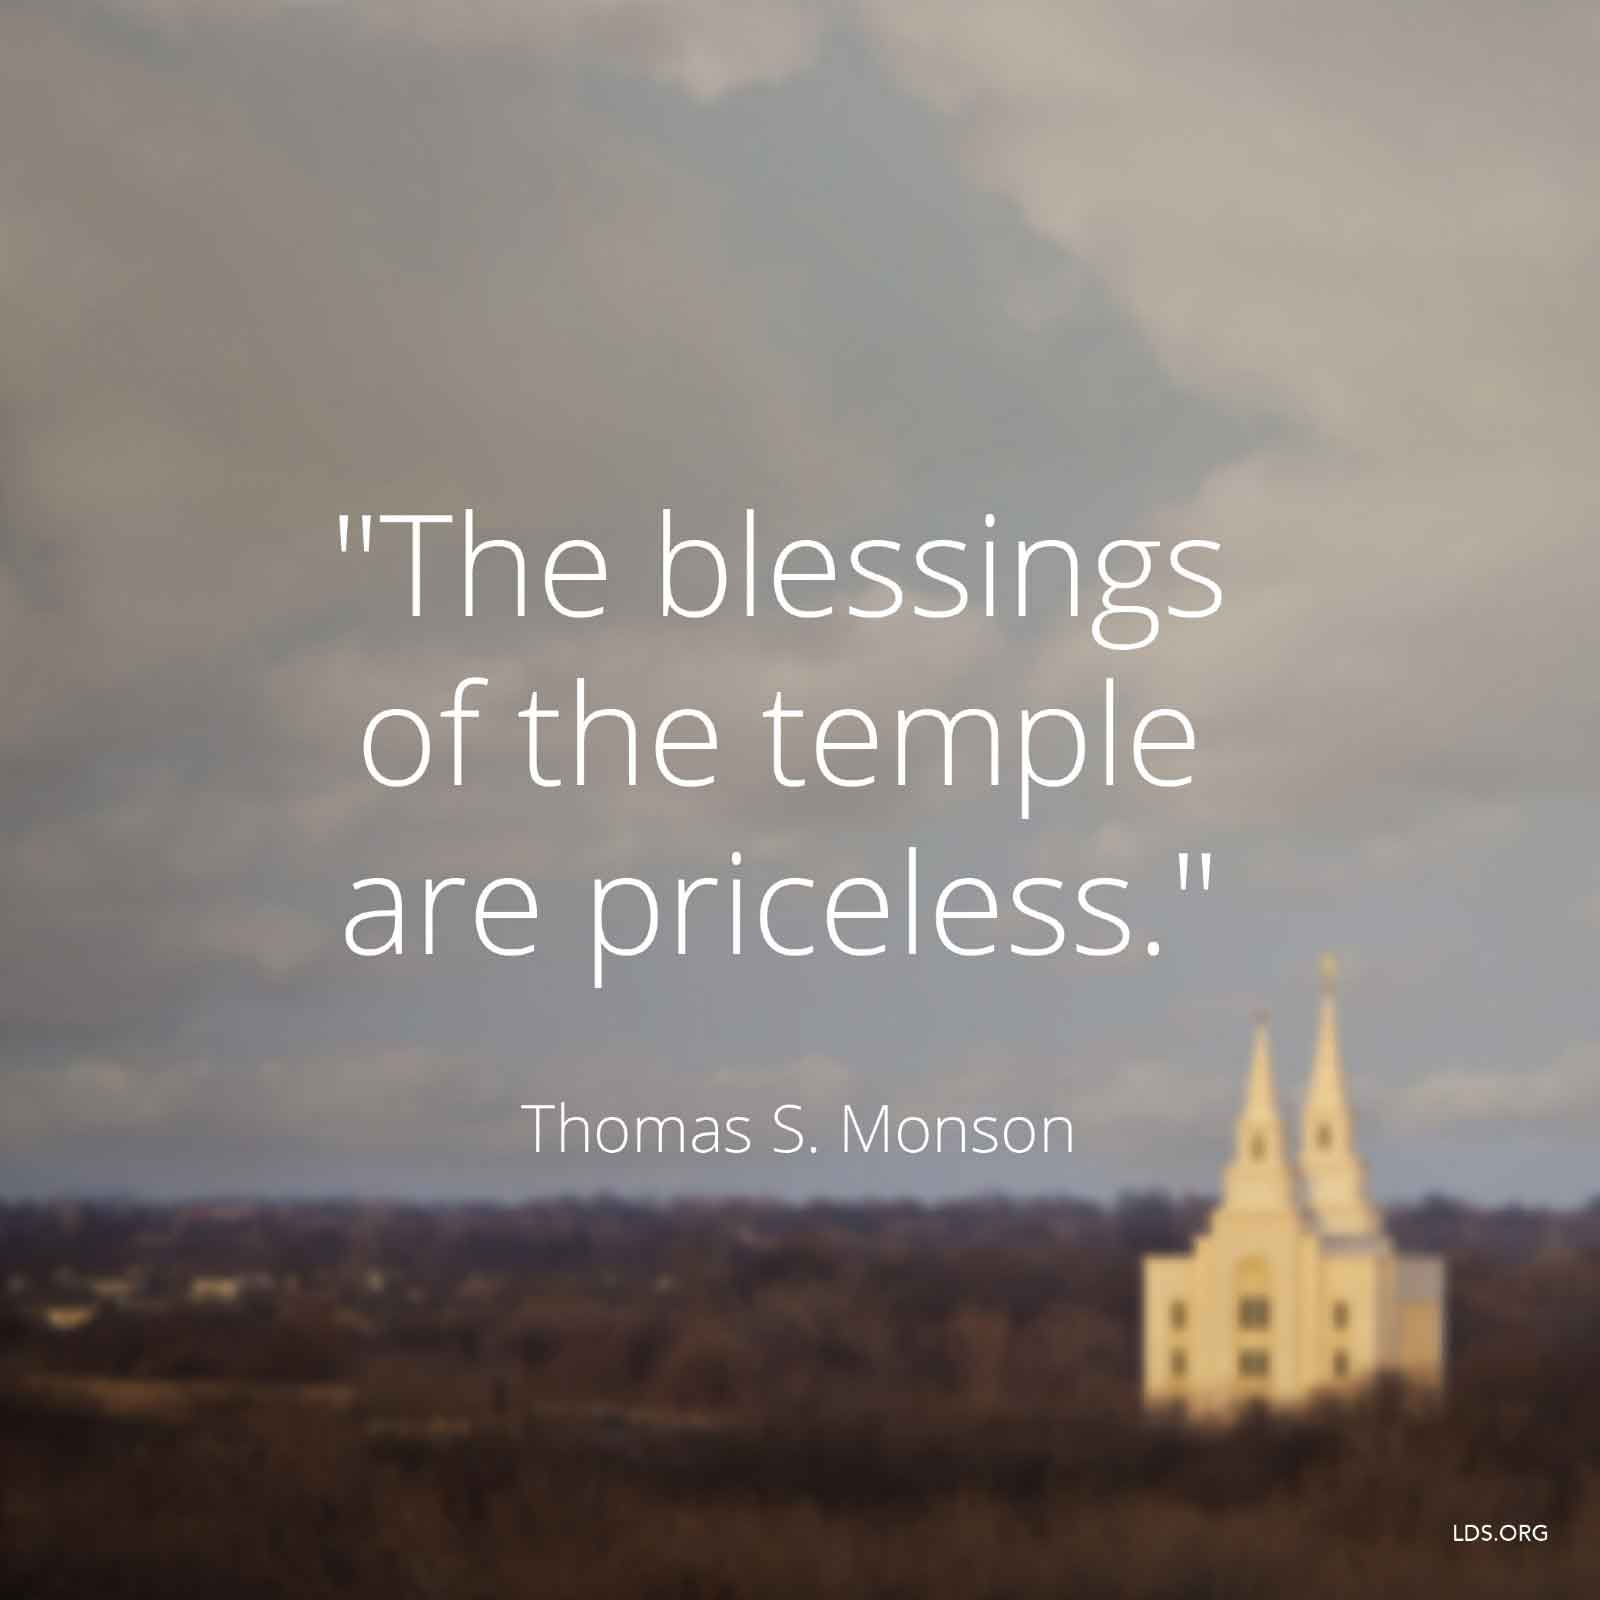 meme-monson-blessings-temple